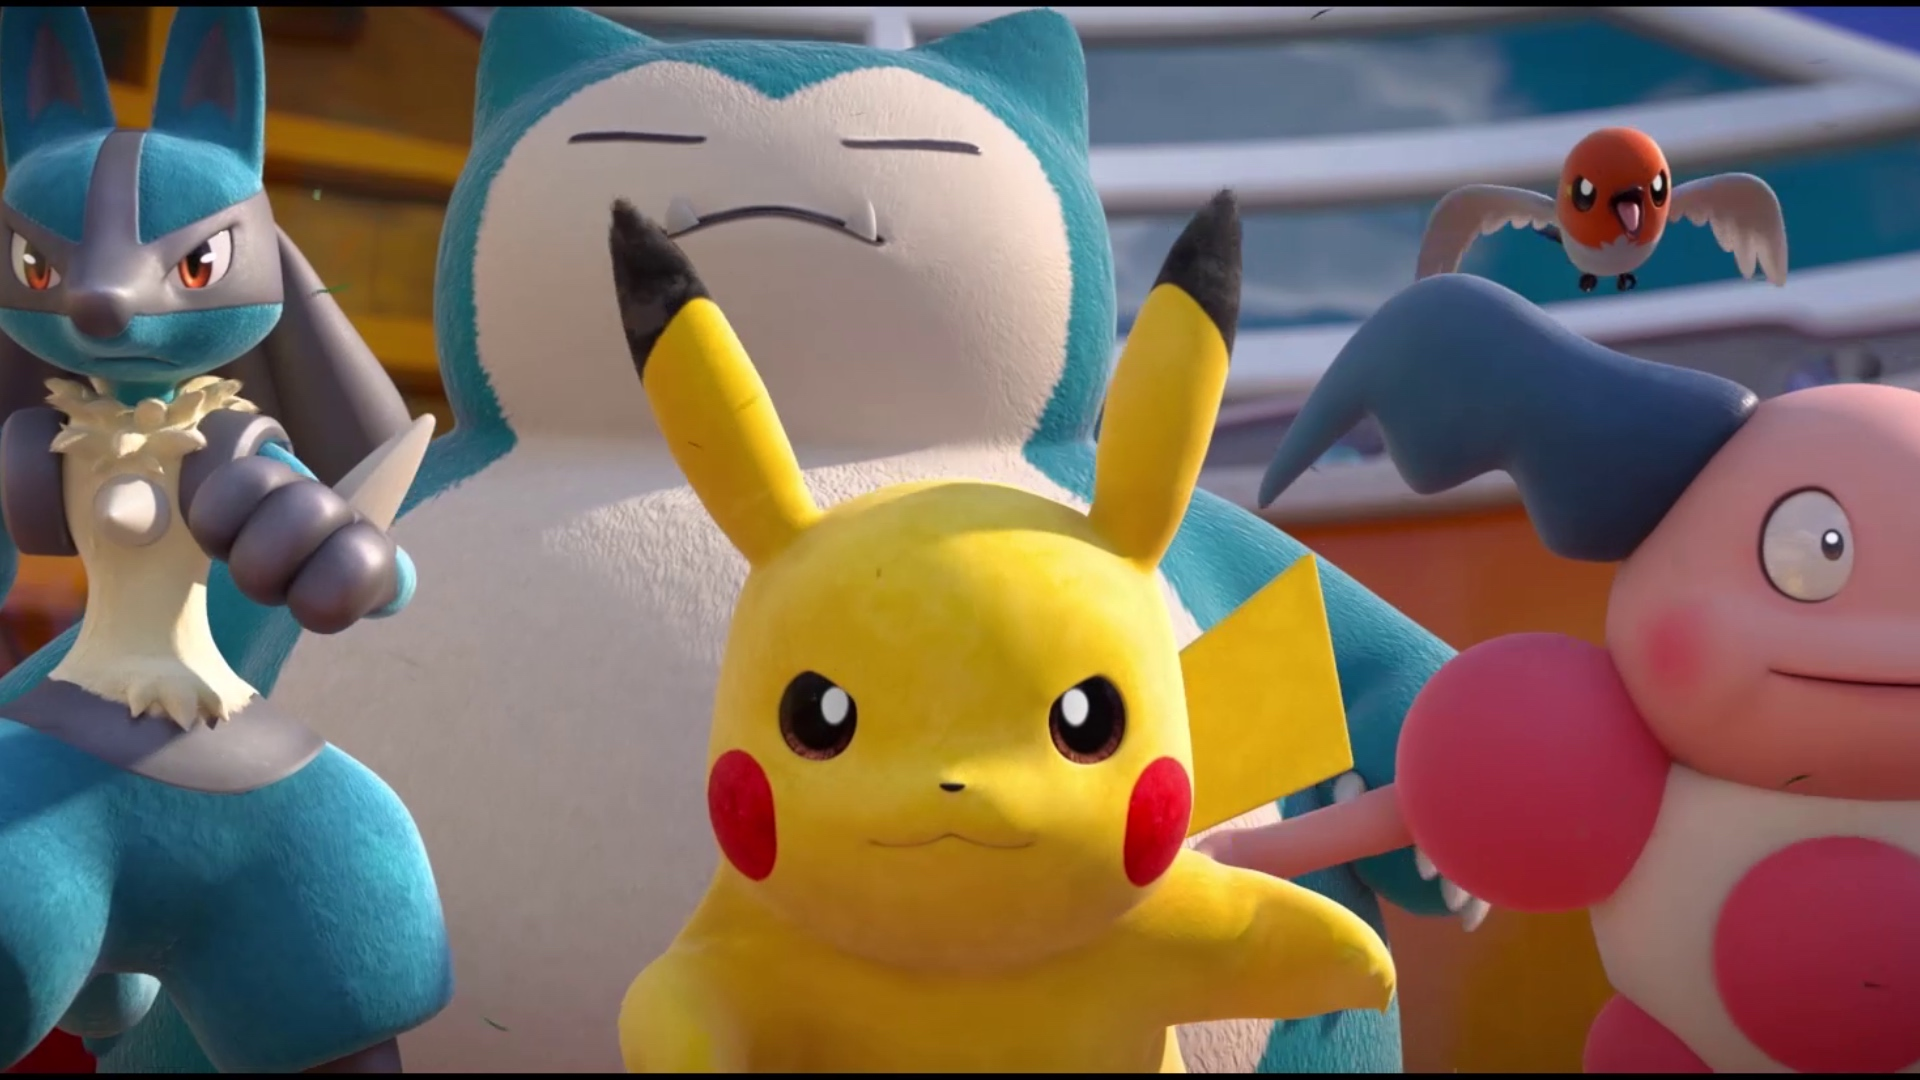 These are the best Pokémon games for iPhone and iPad